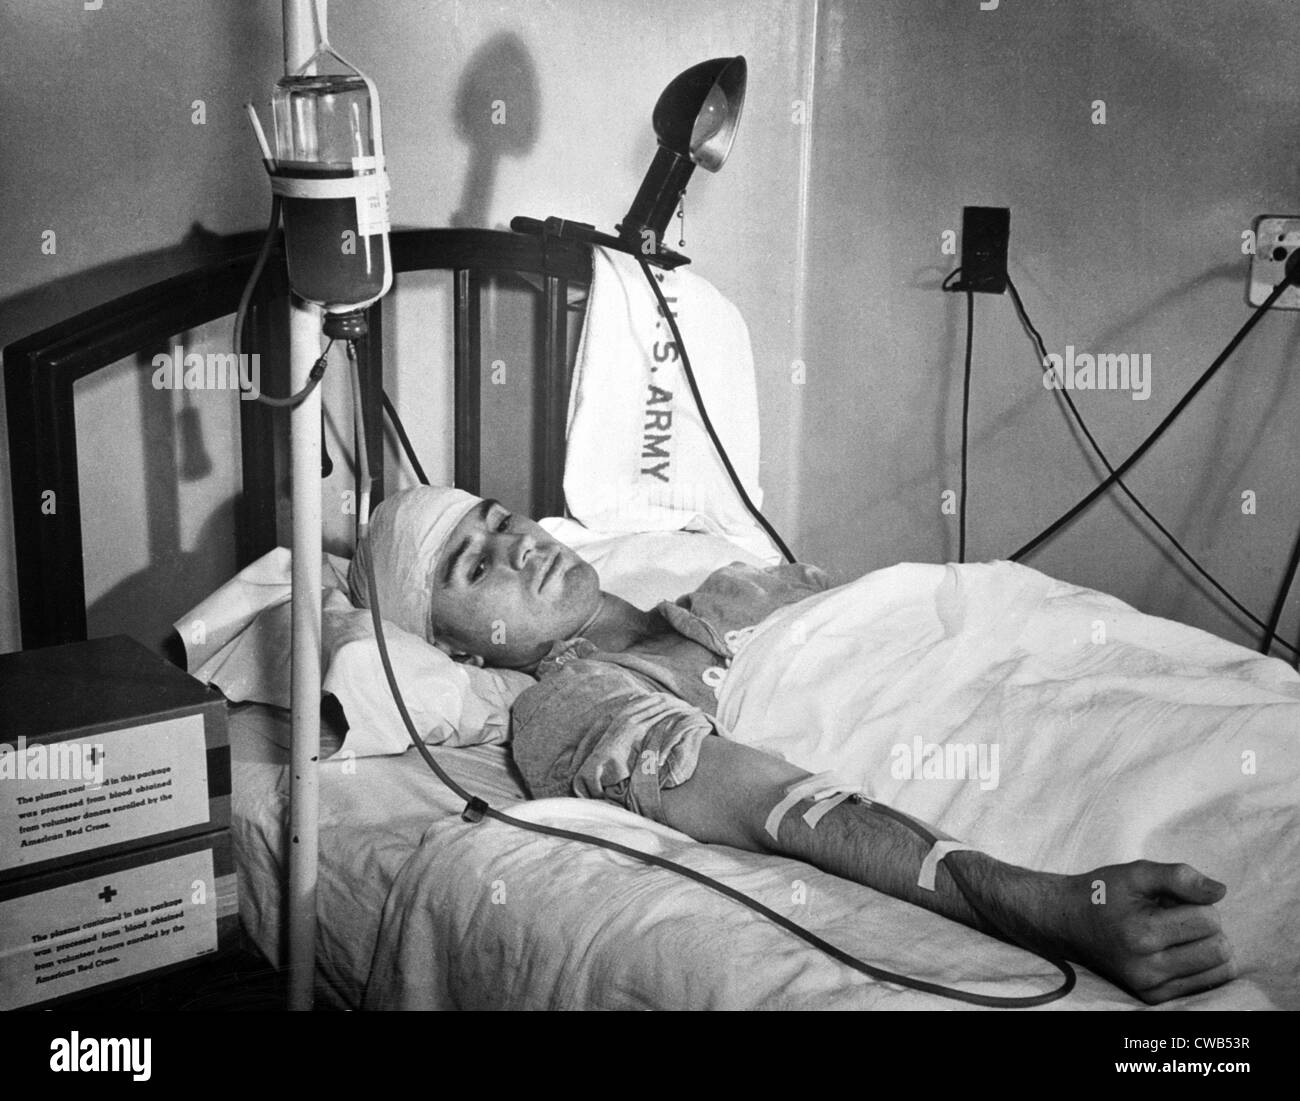 Blood Transfusion. First Lieutenant Landis D. Morris, of Olar, South Carolina, wounded by a sniper's bullet - Stock Image